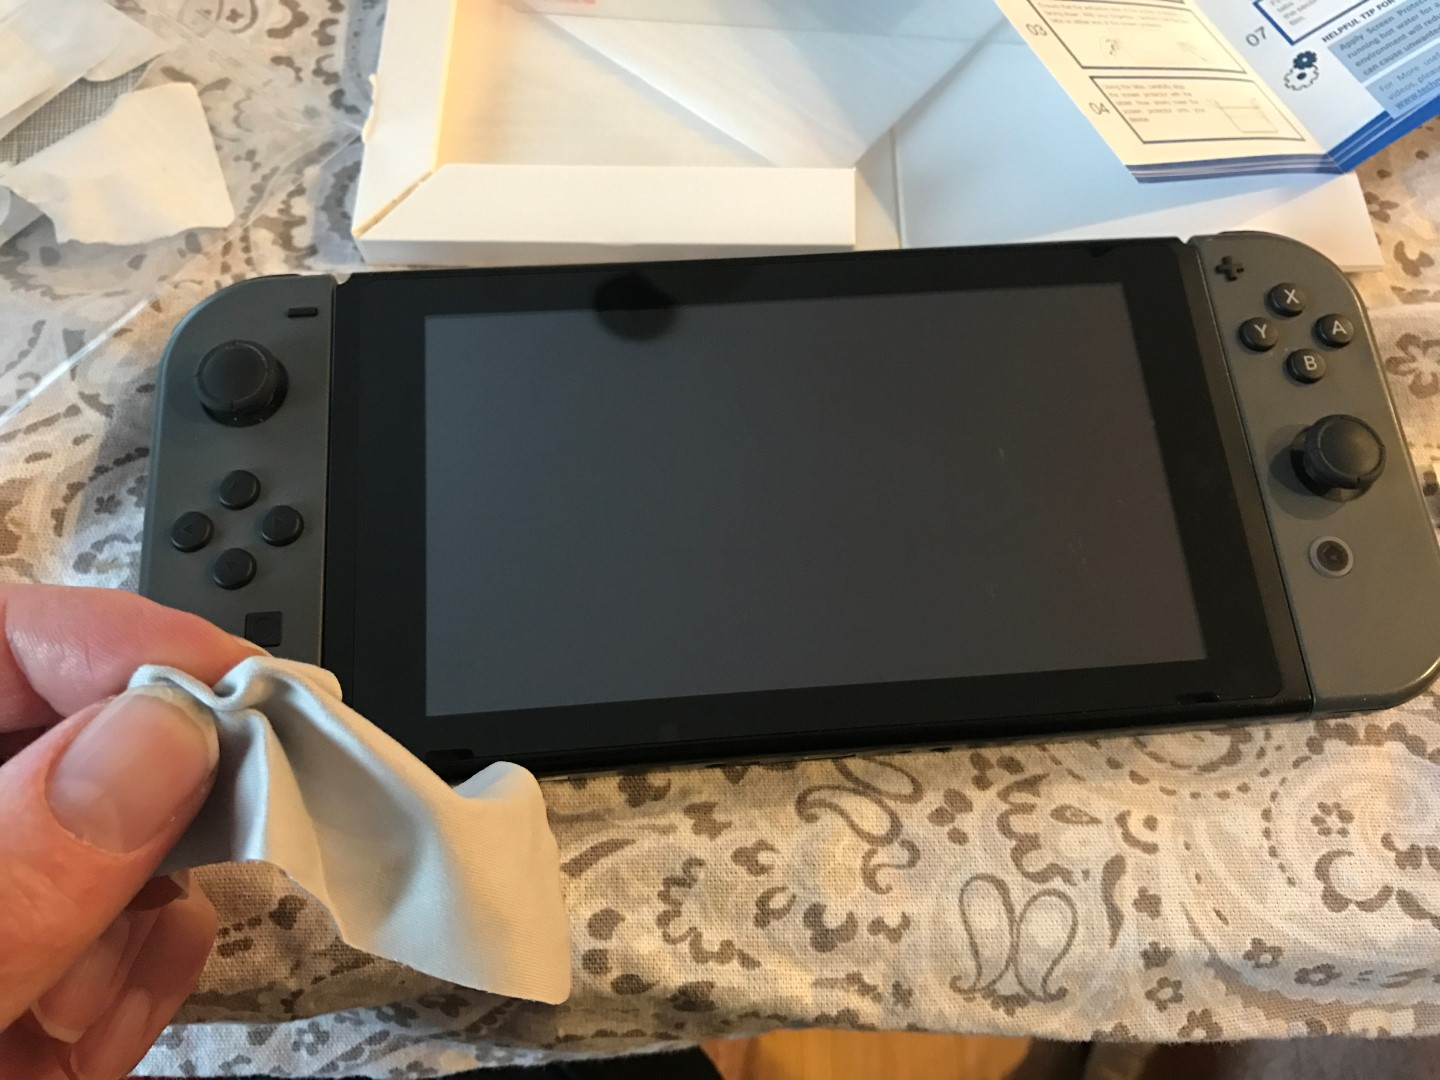 Cleaning the Switch Screen